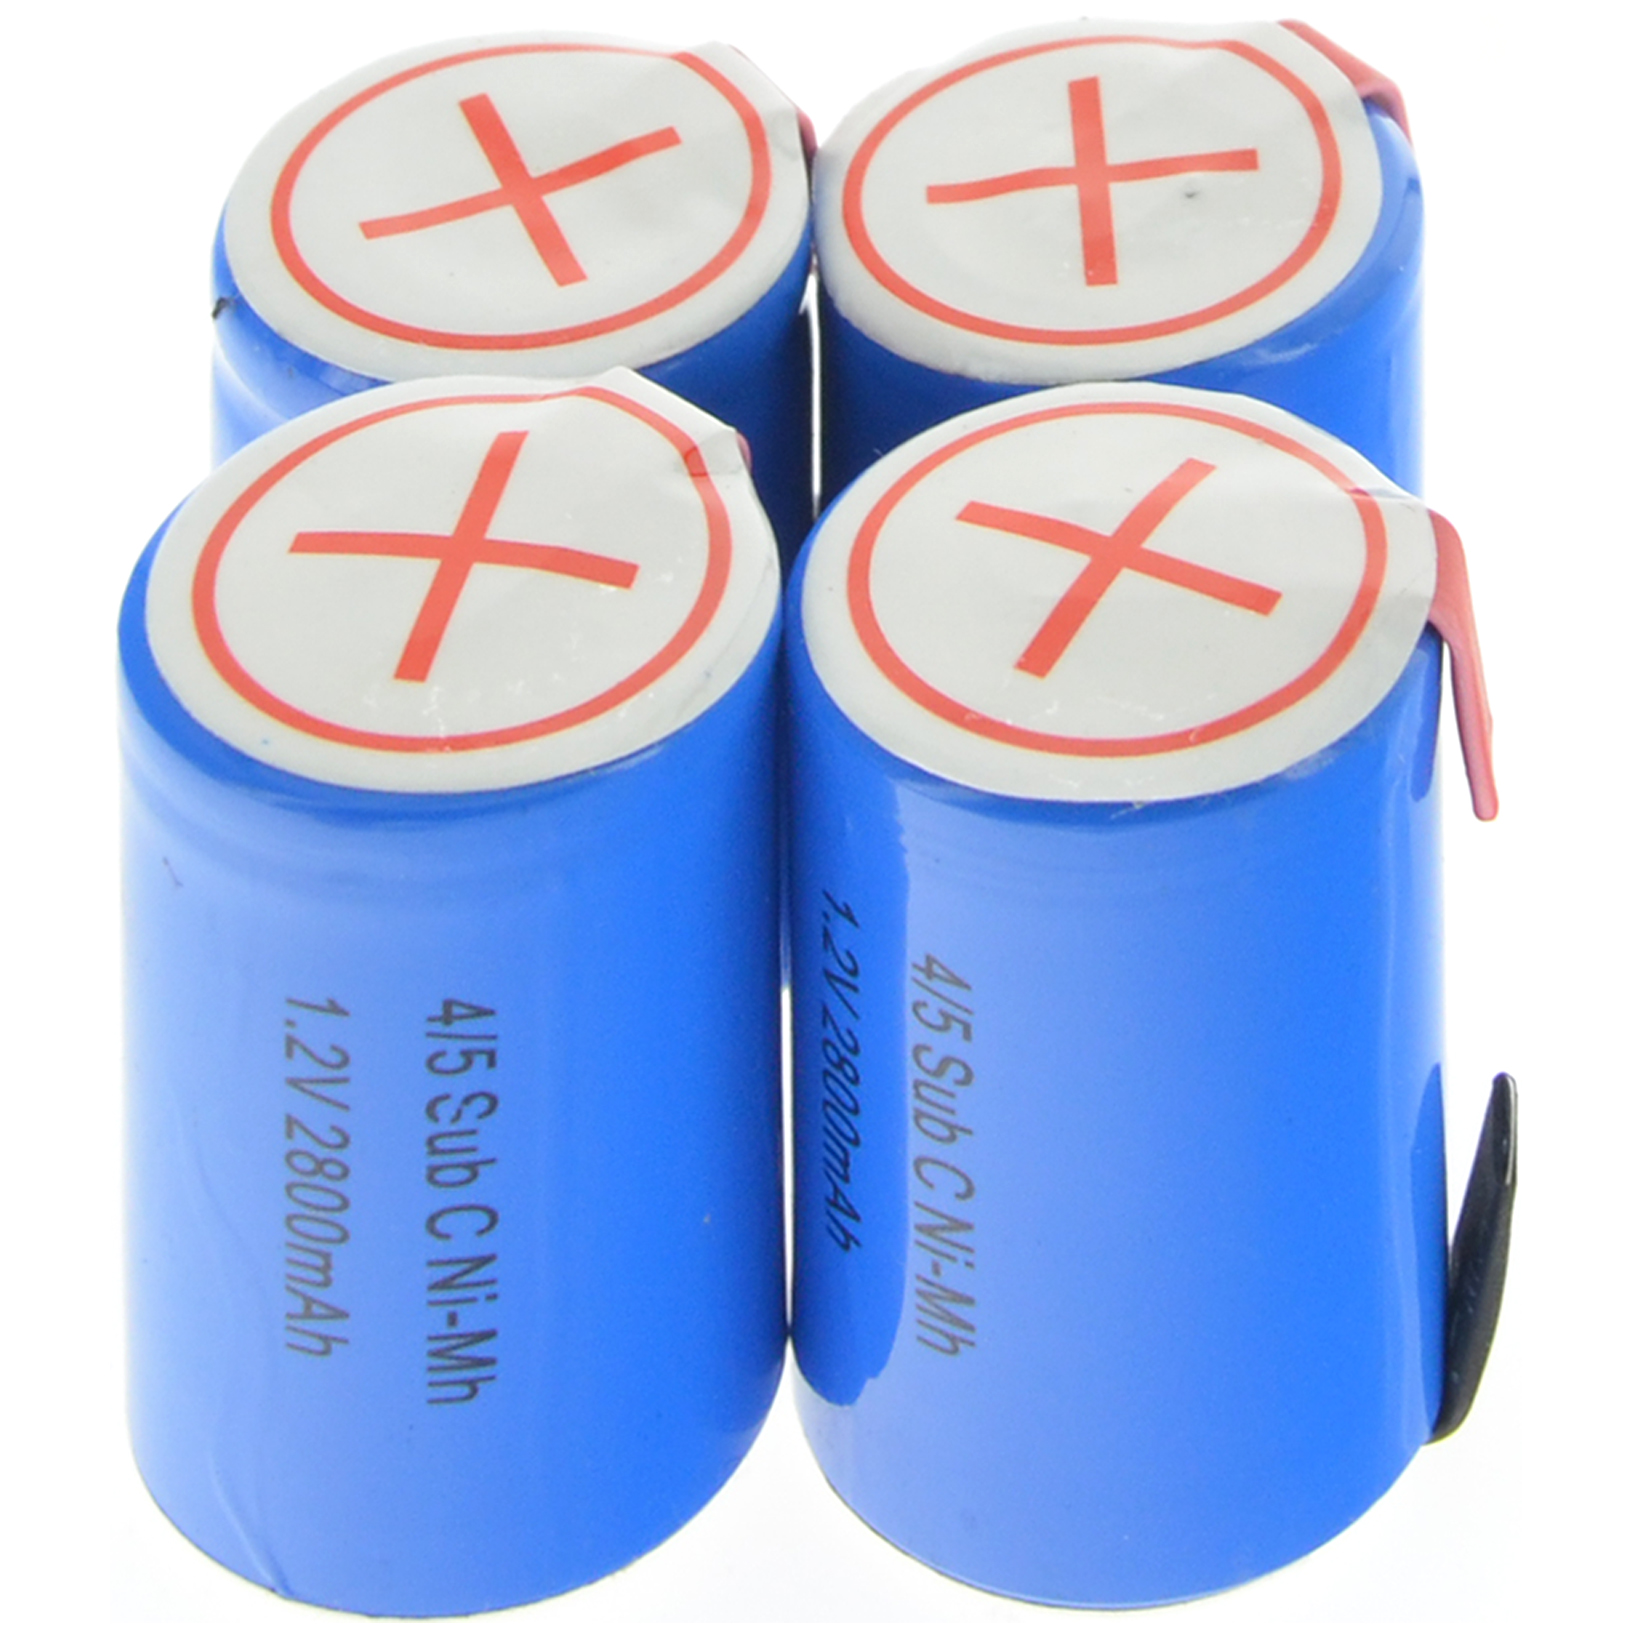 1/2/4/8/12pcs 4/5 SubC Sub C 2800mAh 12pcs 1.2V Ni-Mh Rechargeable Battery Blue Cell with Tab жаровня d 26 см с крышкой традиция гранит тг9263